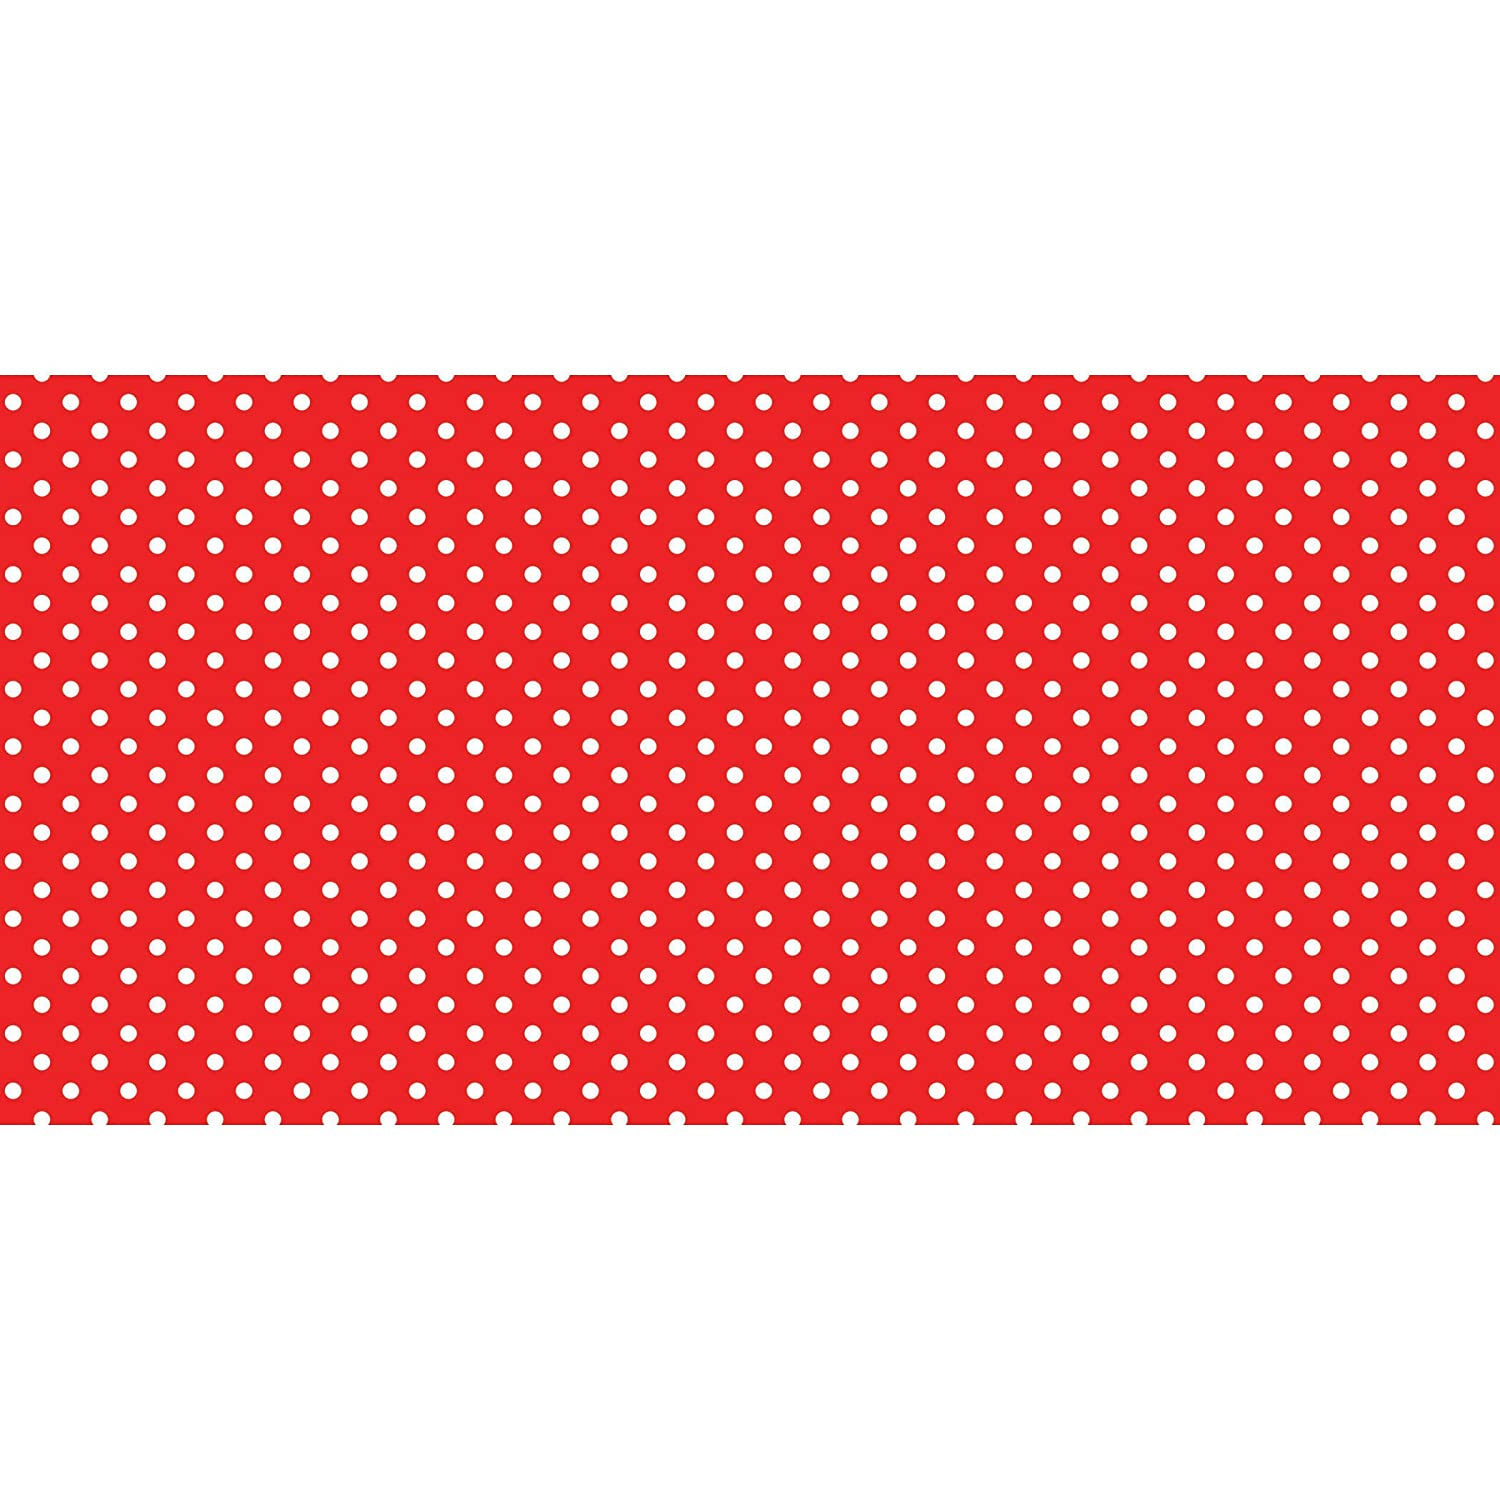 Fadeless 48X50Ft Classic Dots Red B014CD1XYW Red & White Classic Dots Red & White Classic Dots